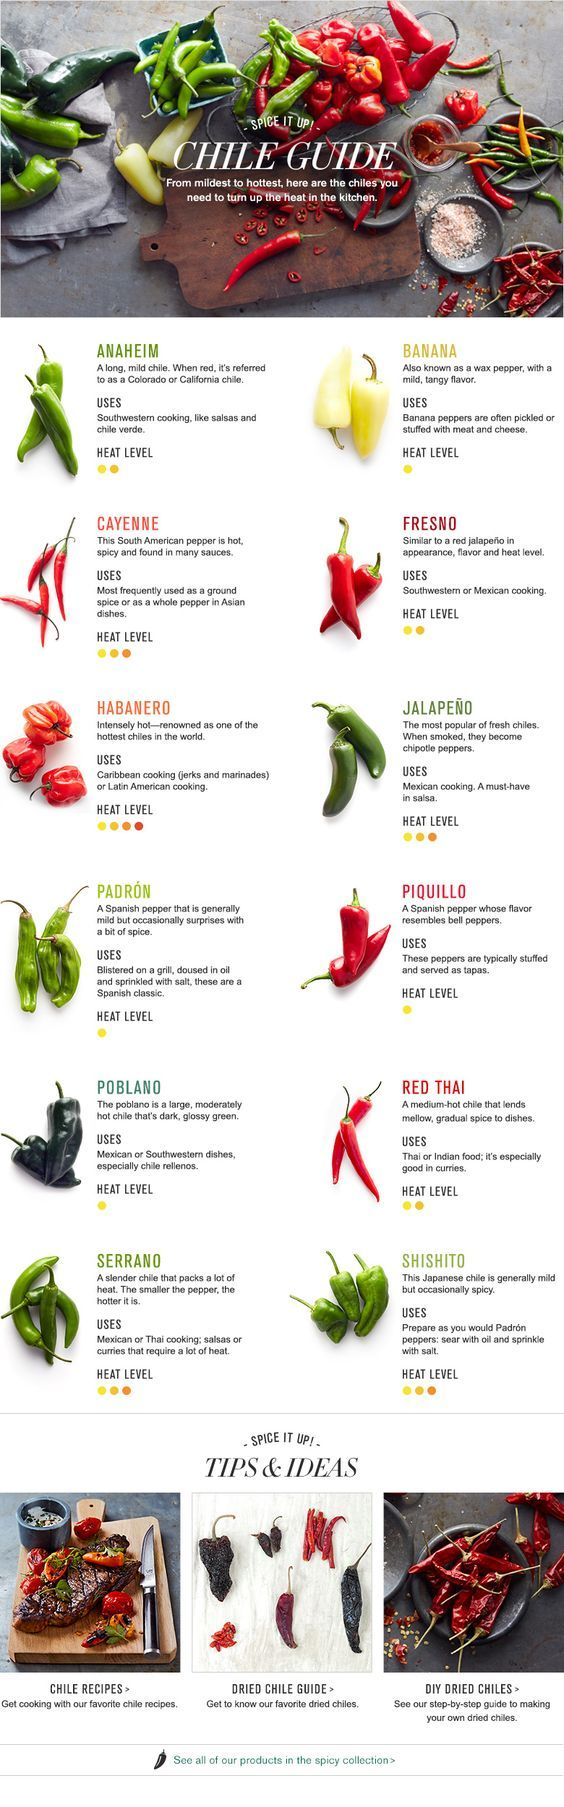 Chile Guide, get to know your peppers before you cook with them! {Williams-Sonoma} #chile